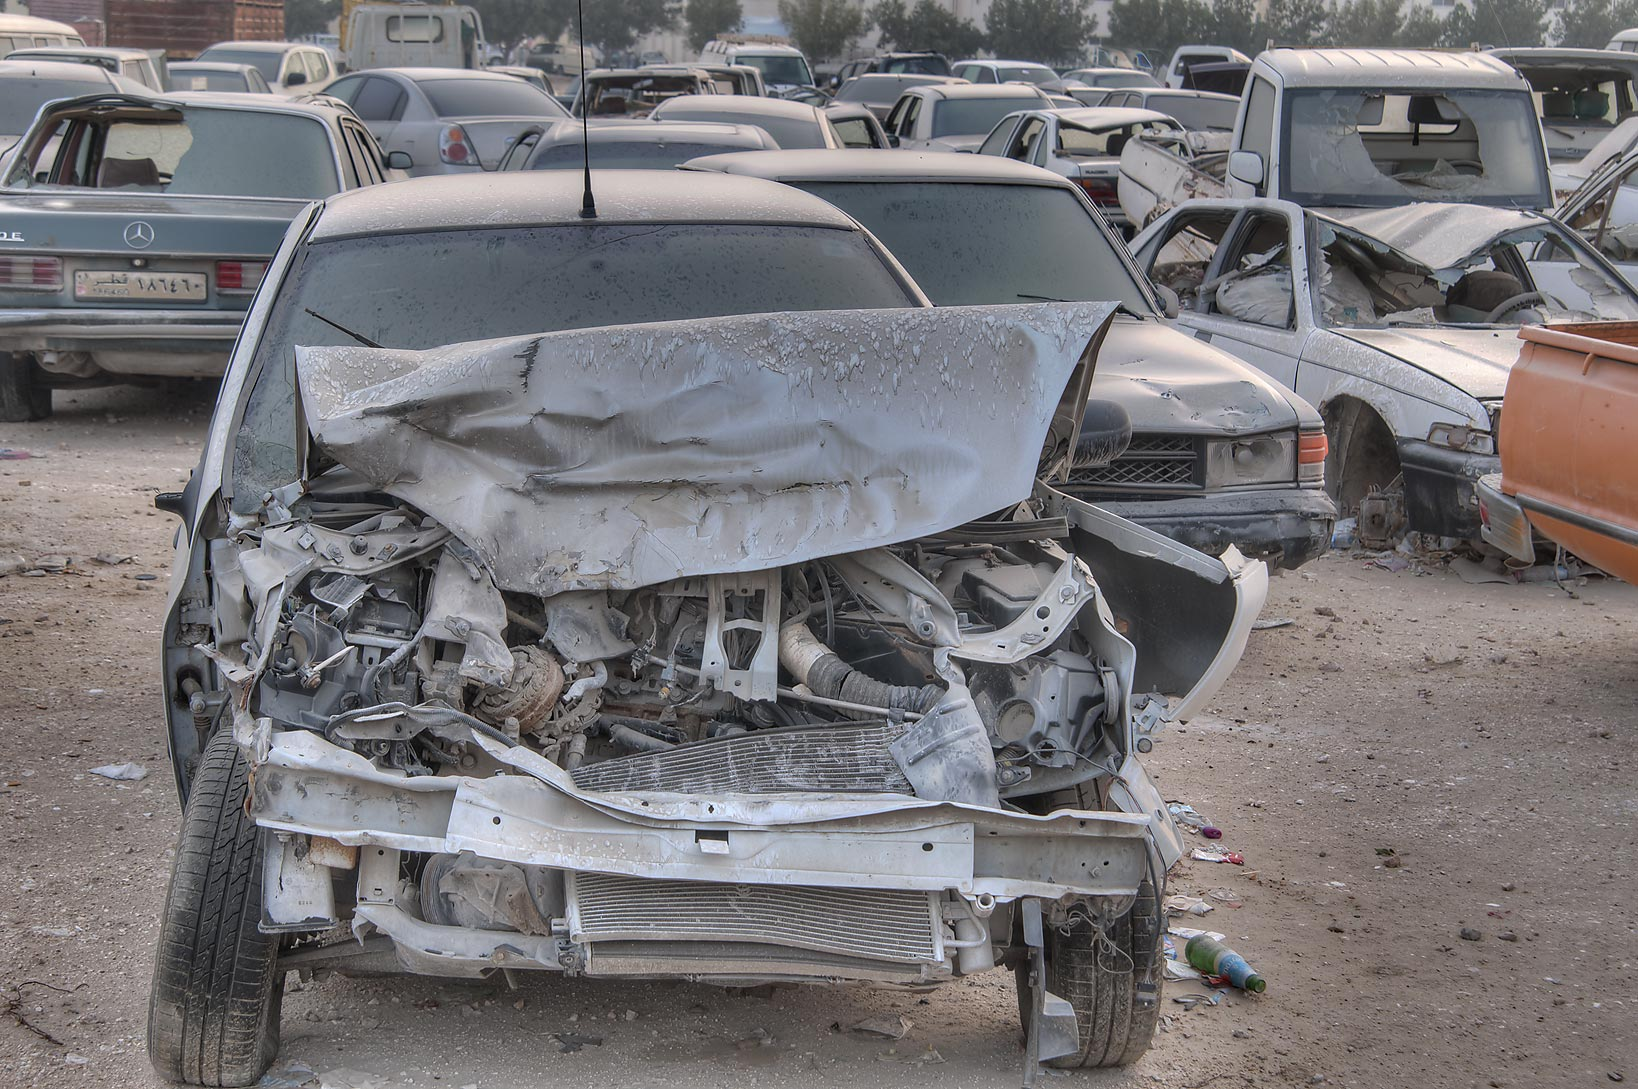 Damaged cars near Al Mamoura Traffic Police and...Division, Traffic Patrol). Doha, Qatar